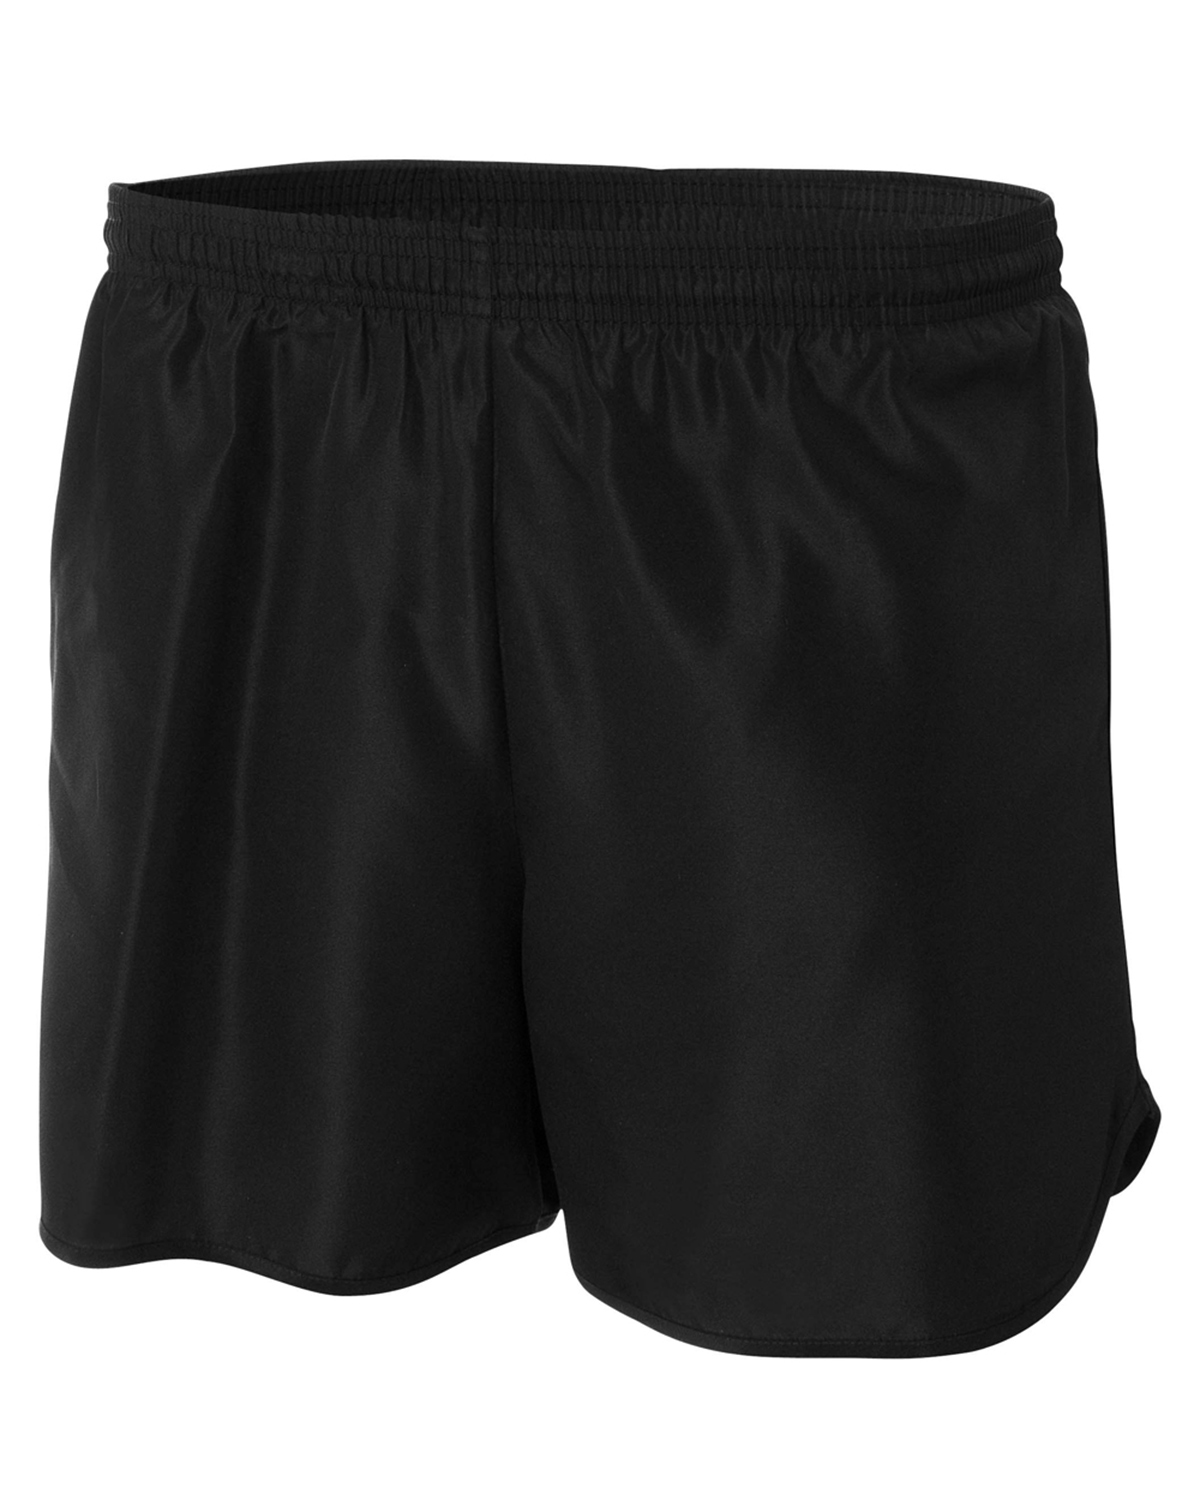 A4 Drop Ship N5344 - Men's Running Shorts